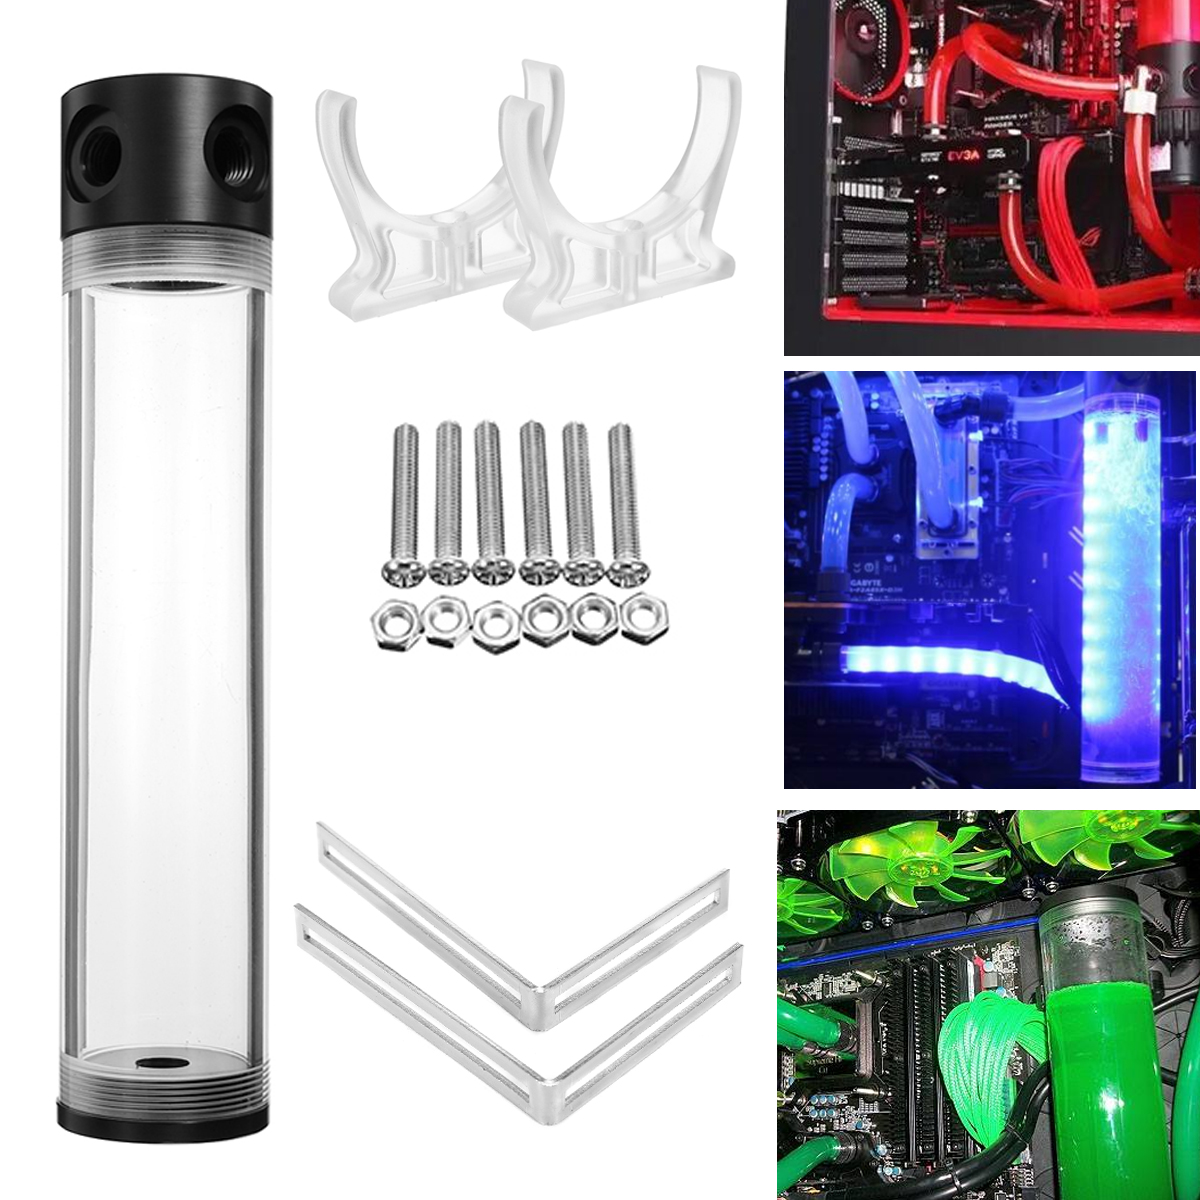 50x400mm PC Water Liquid Cooling Tank Acrylic Cylinder Reservoir Helix Suspension G1/4 T Water Cooling Kit For Computer CPU g1 4 50mmx110mm acrylic water cooed cylindrical tank cylinder reservoir water cooling tank for pc computer high quality